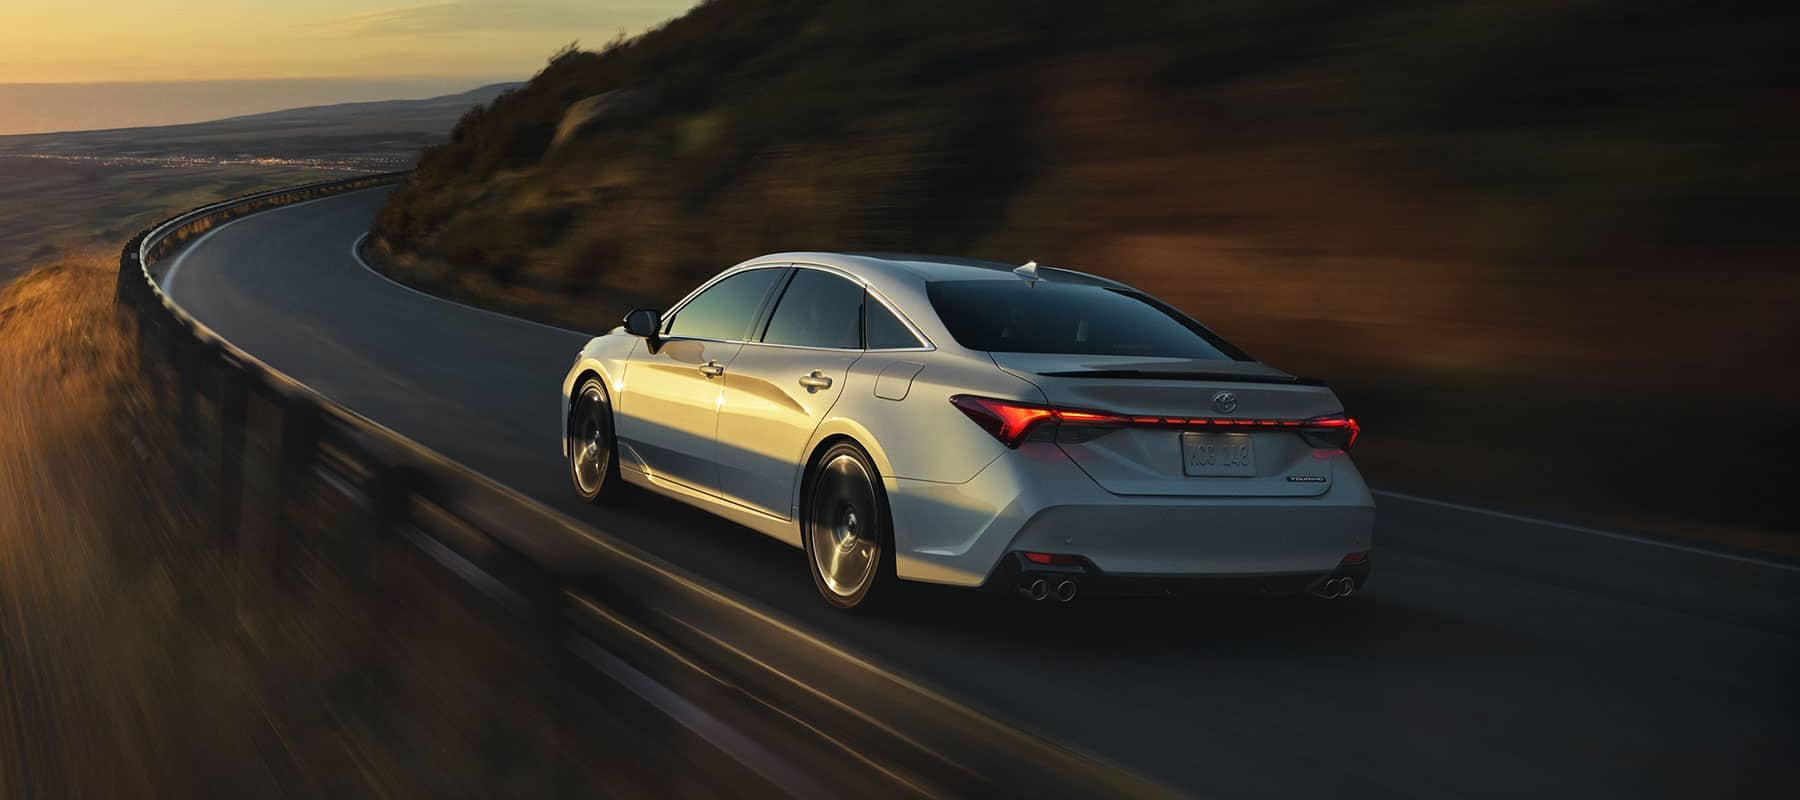 Toyota Avalon driving on road